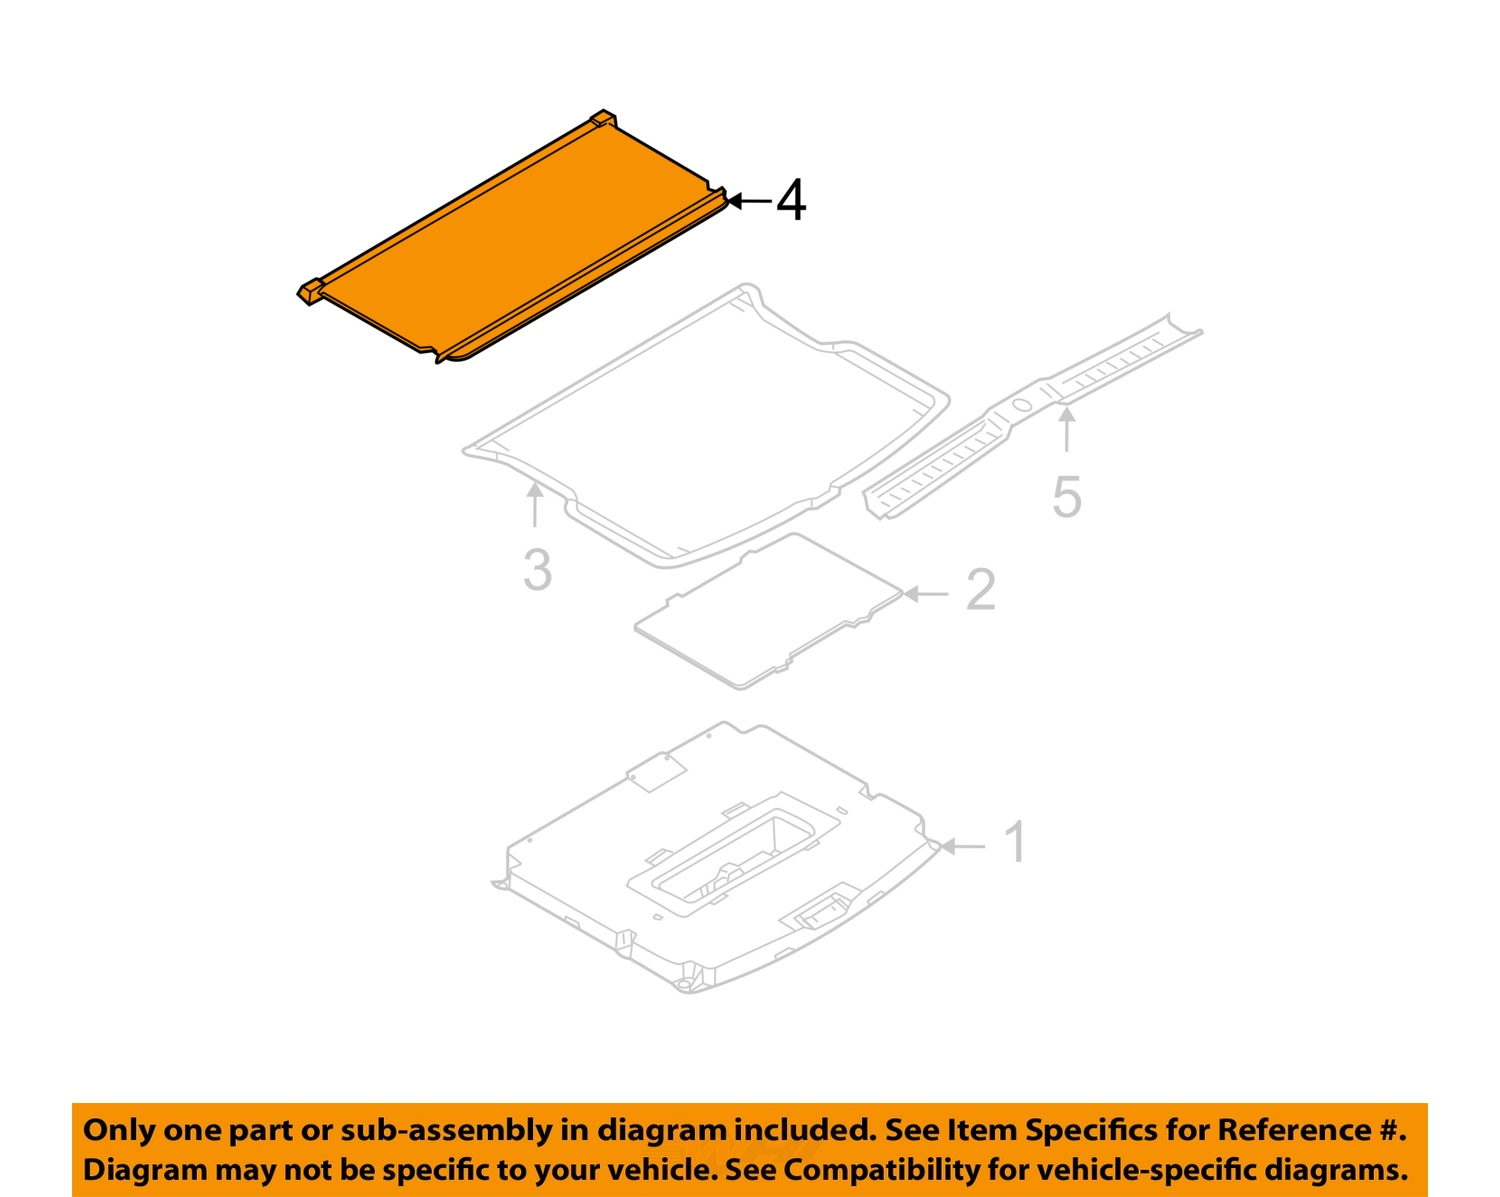 Ford oem 08 12 escape interior rear luggage compartment cover 9l8z7845440ab ebay for Ford interior replacement parts